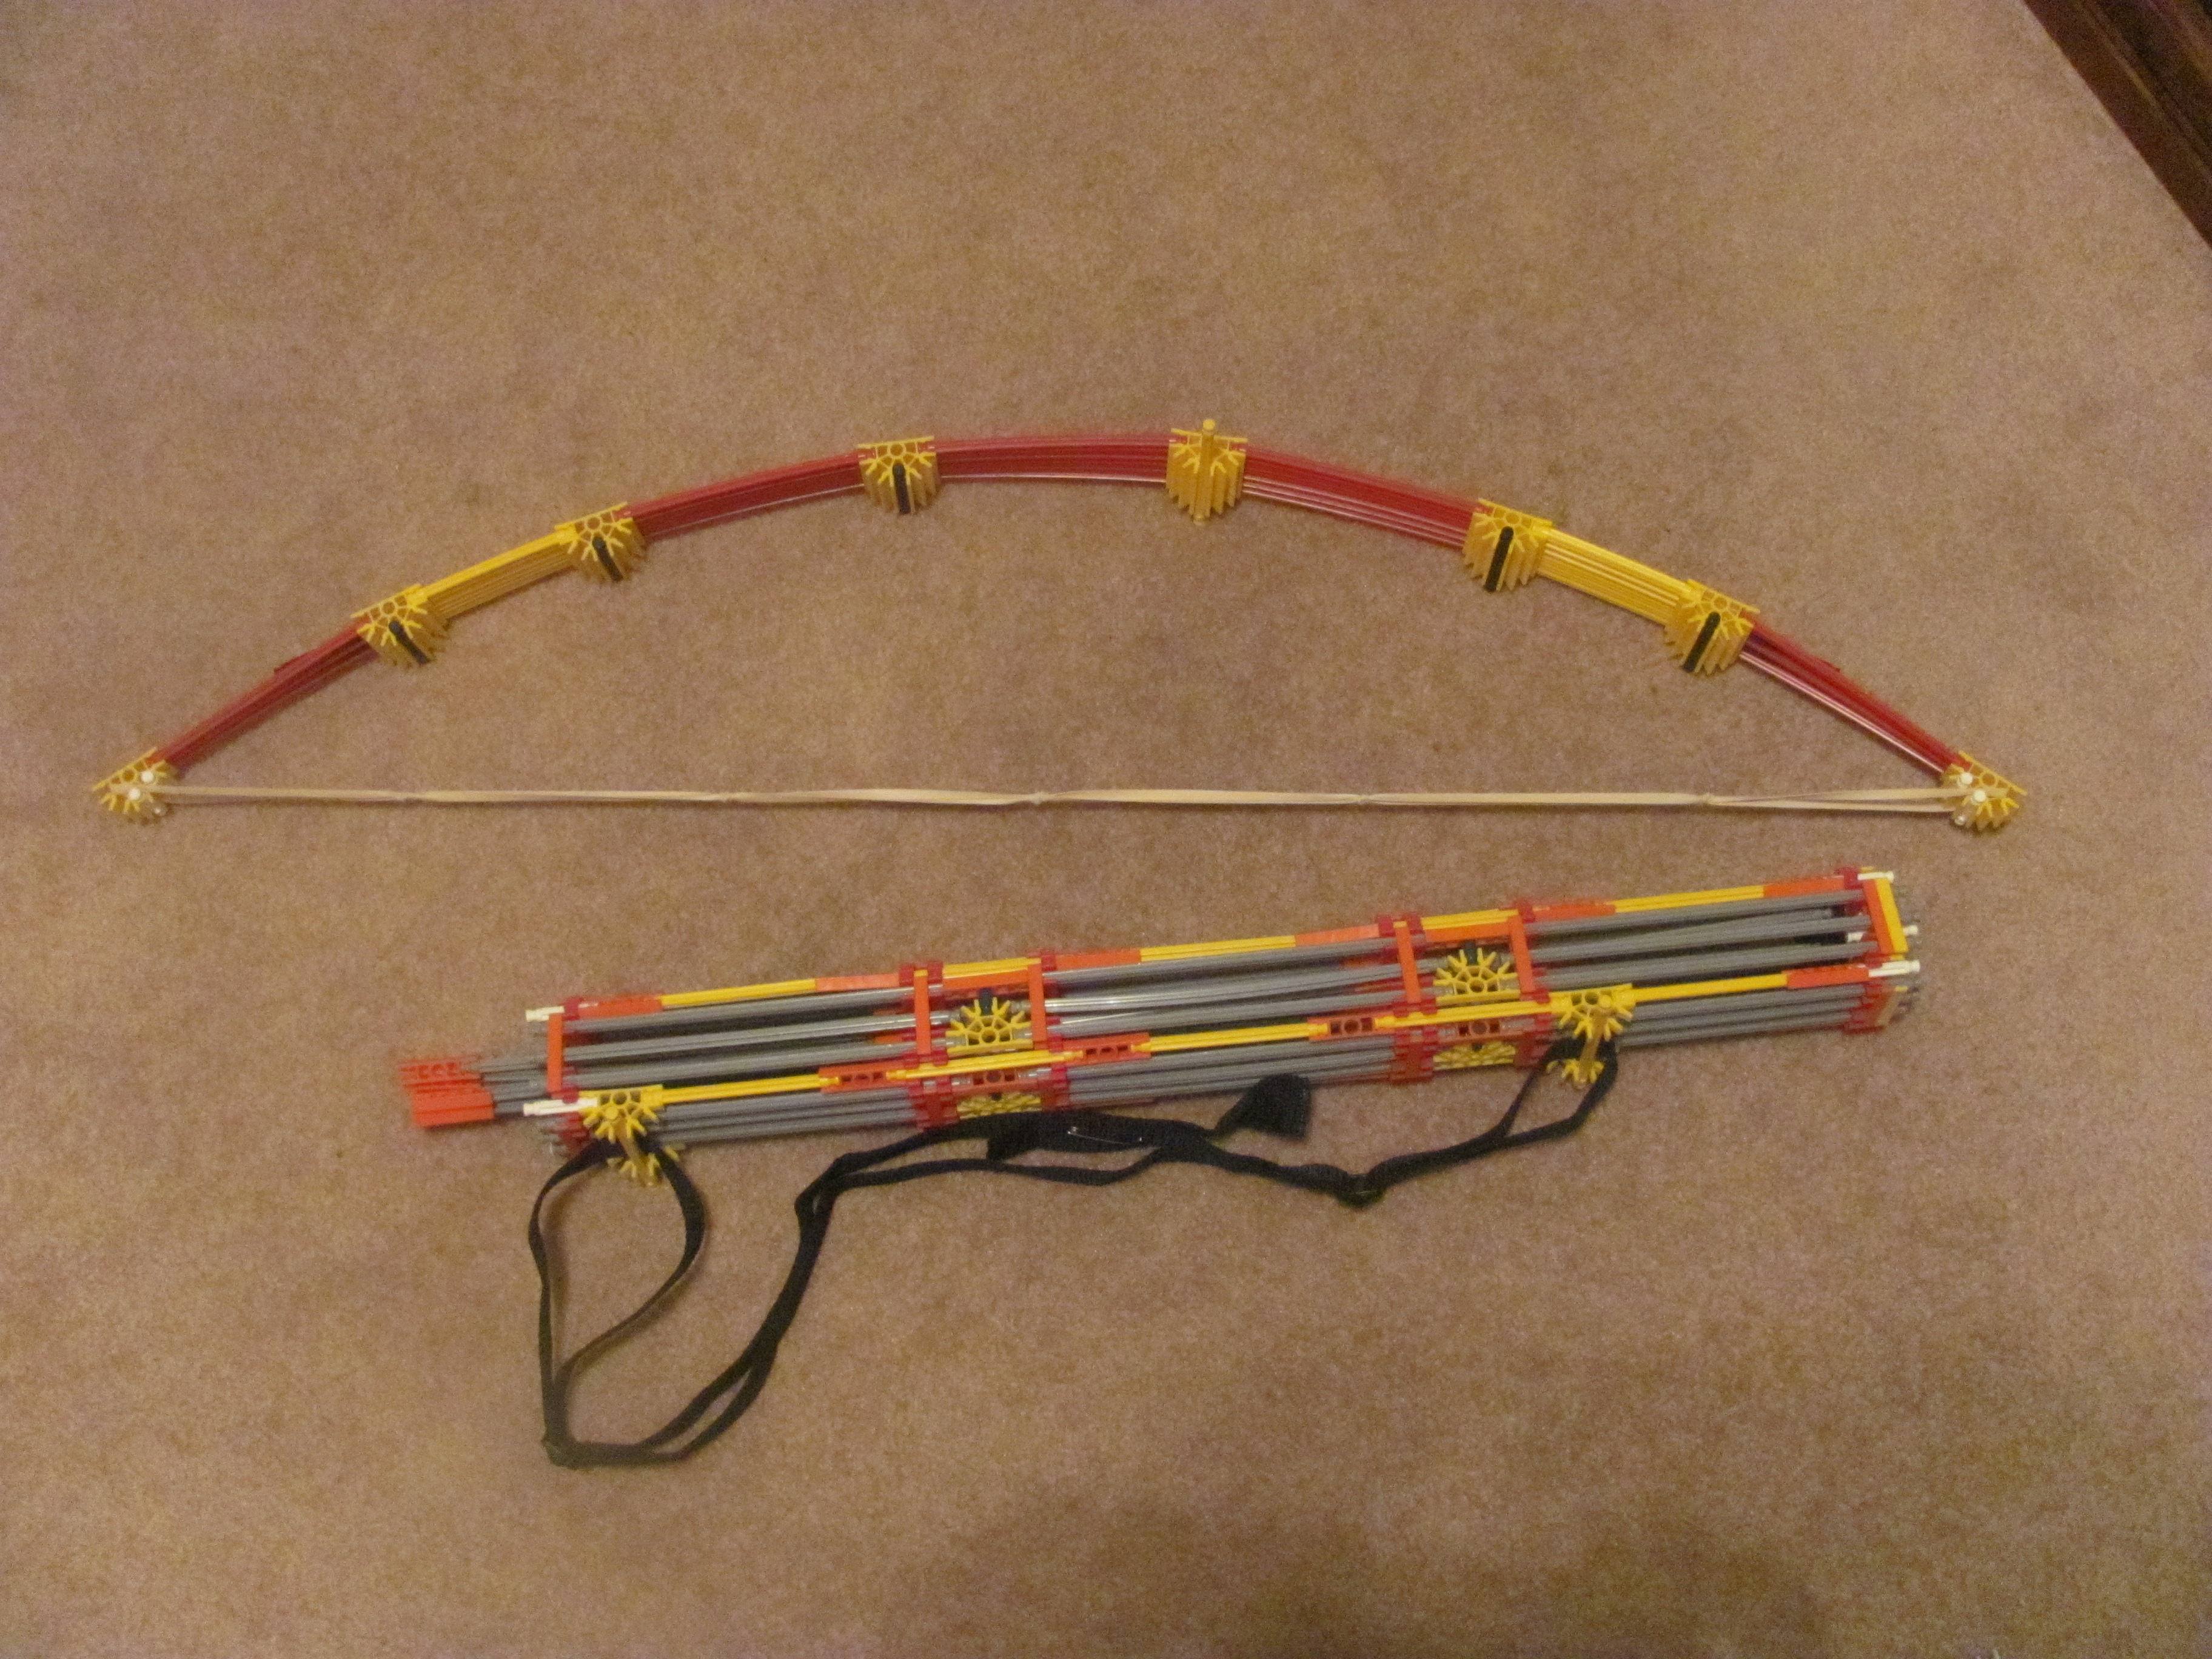 Picture of K'nex Assassin's Creed Bow and Arrow With Quiver